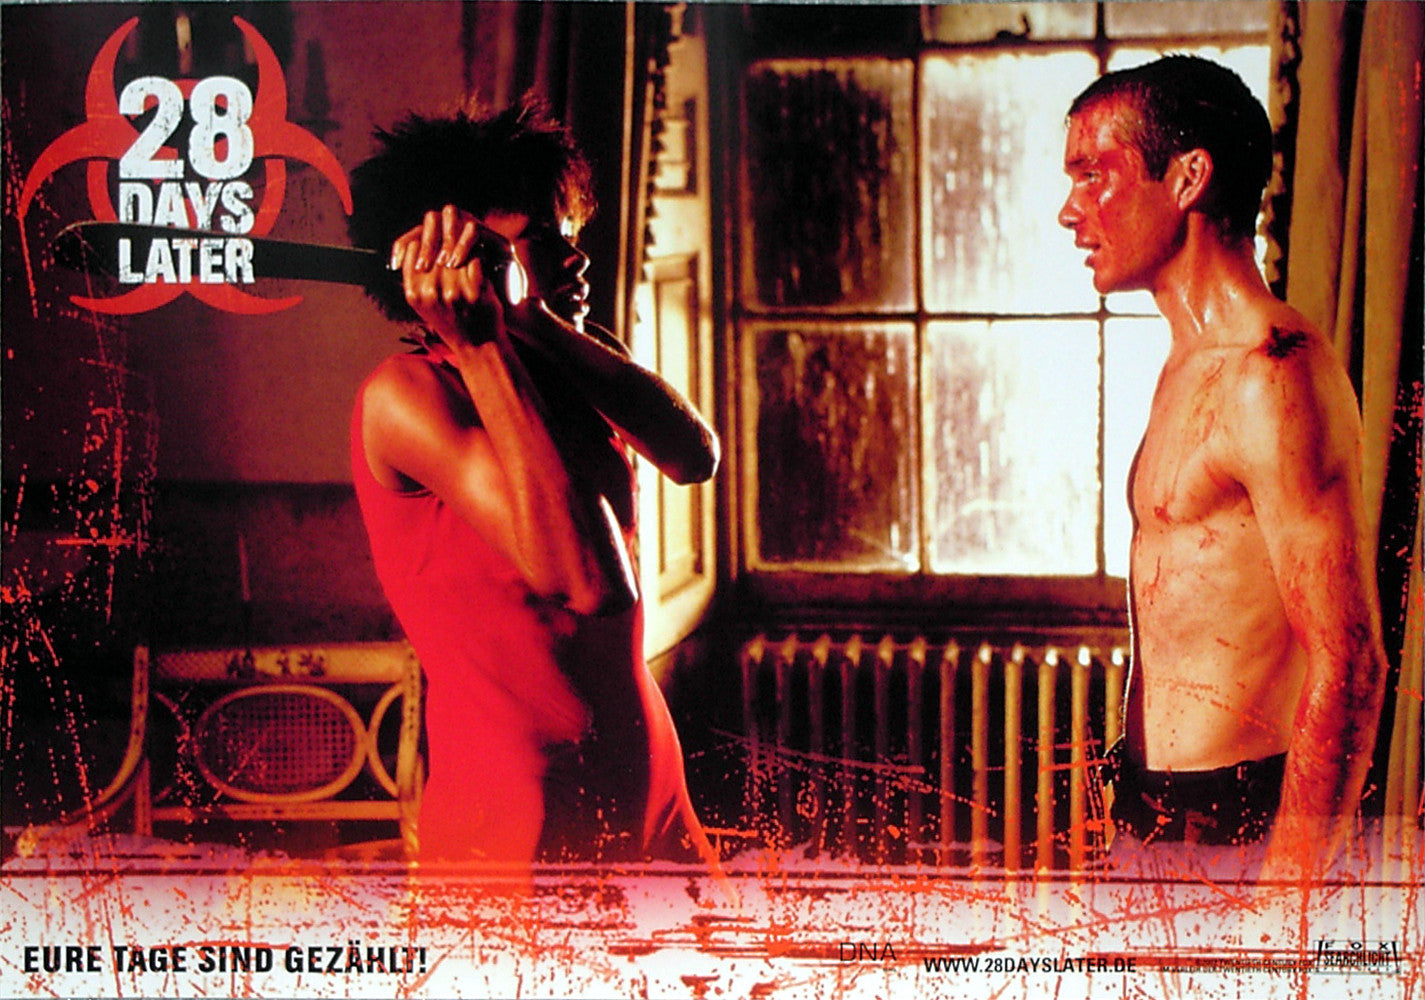 28 DAYS LATER - German lobby card v5